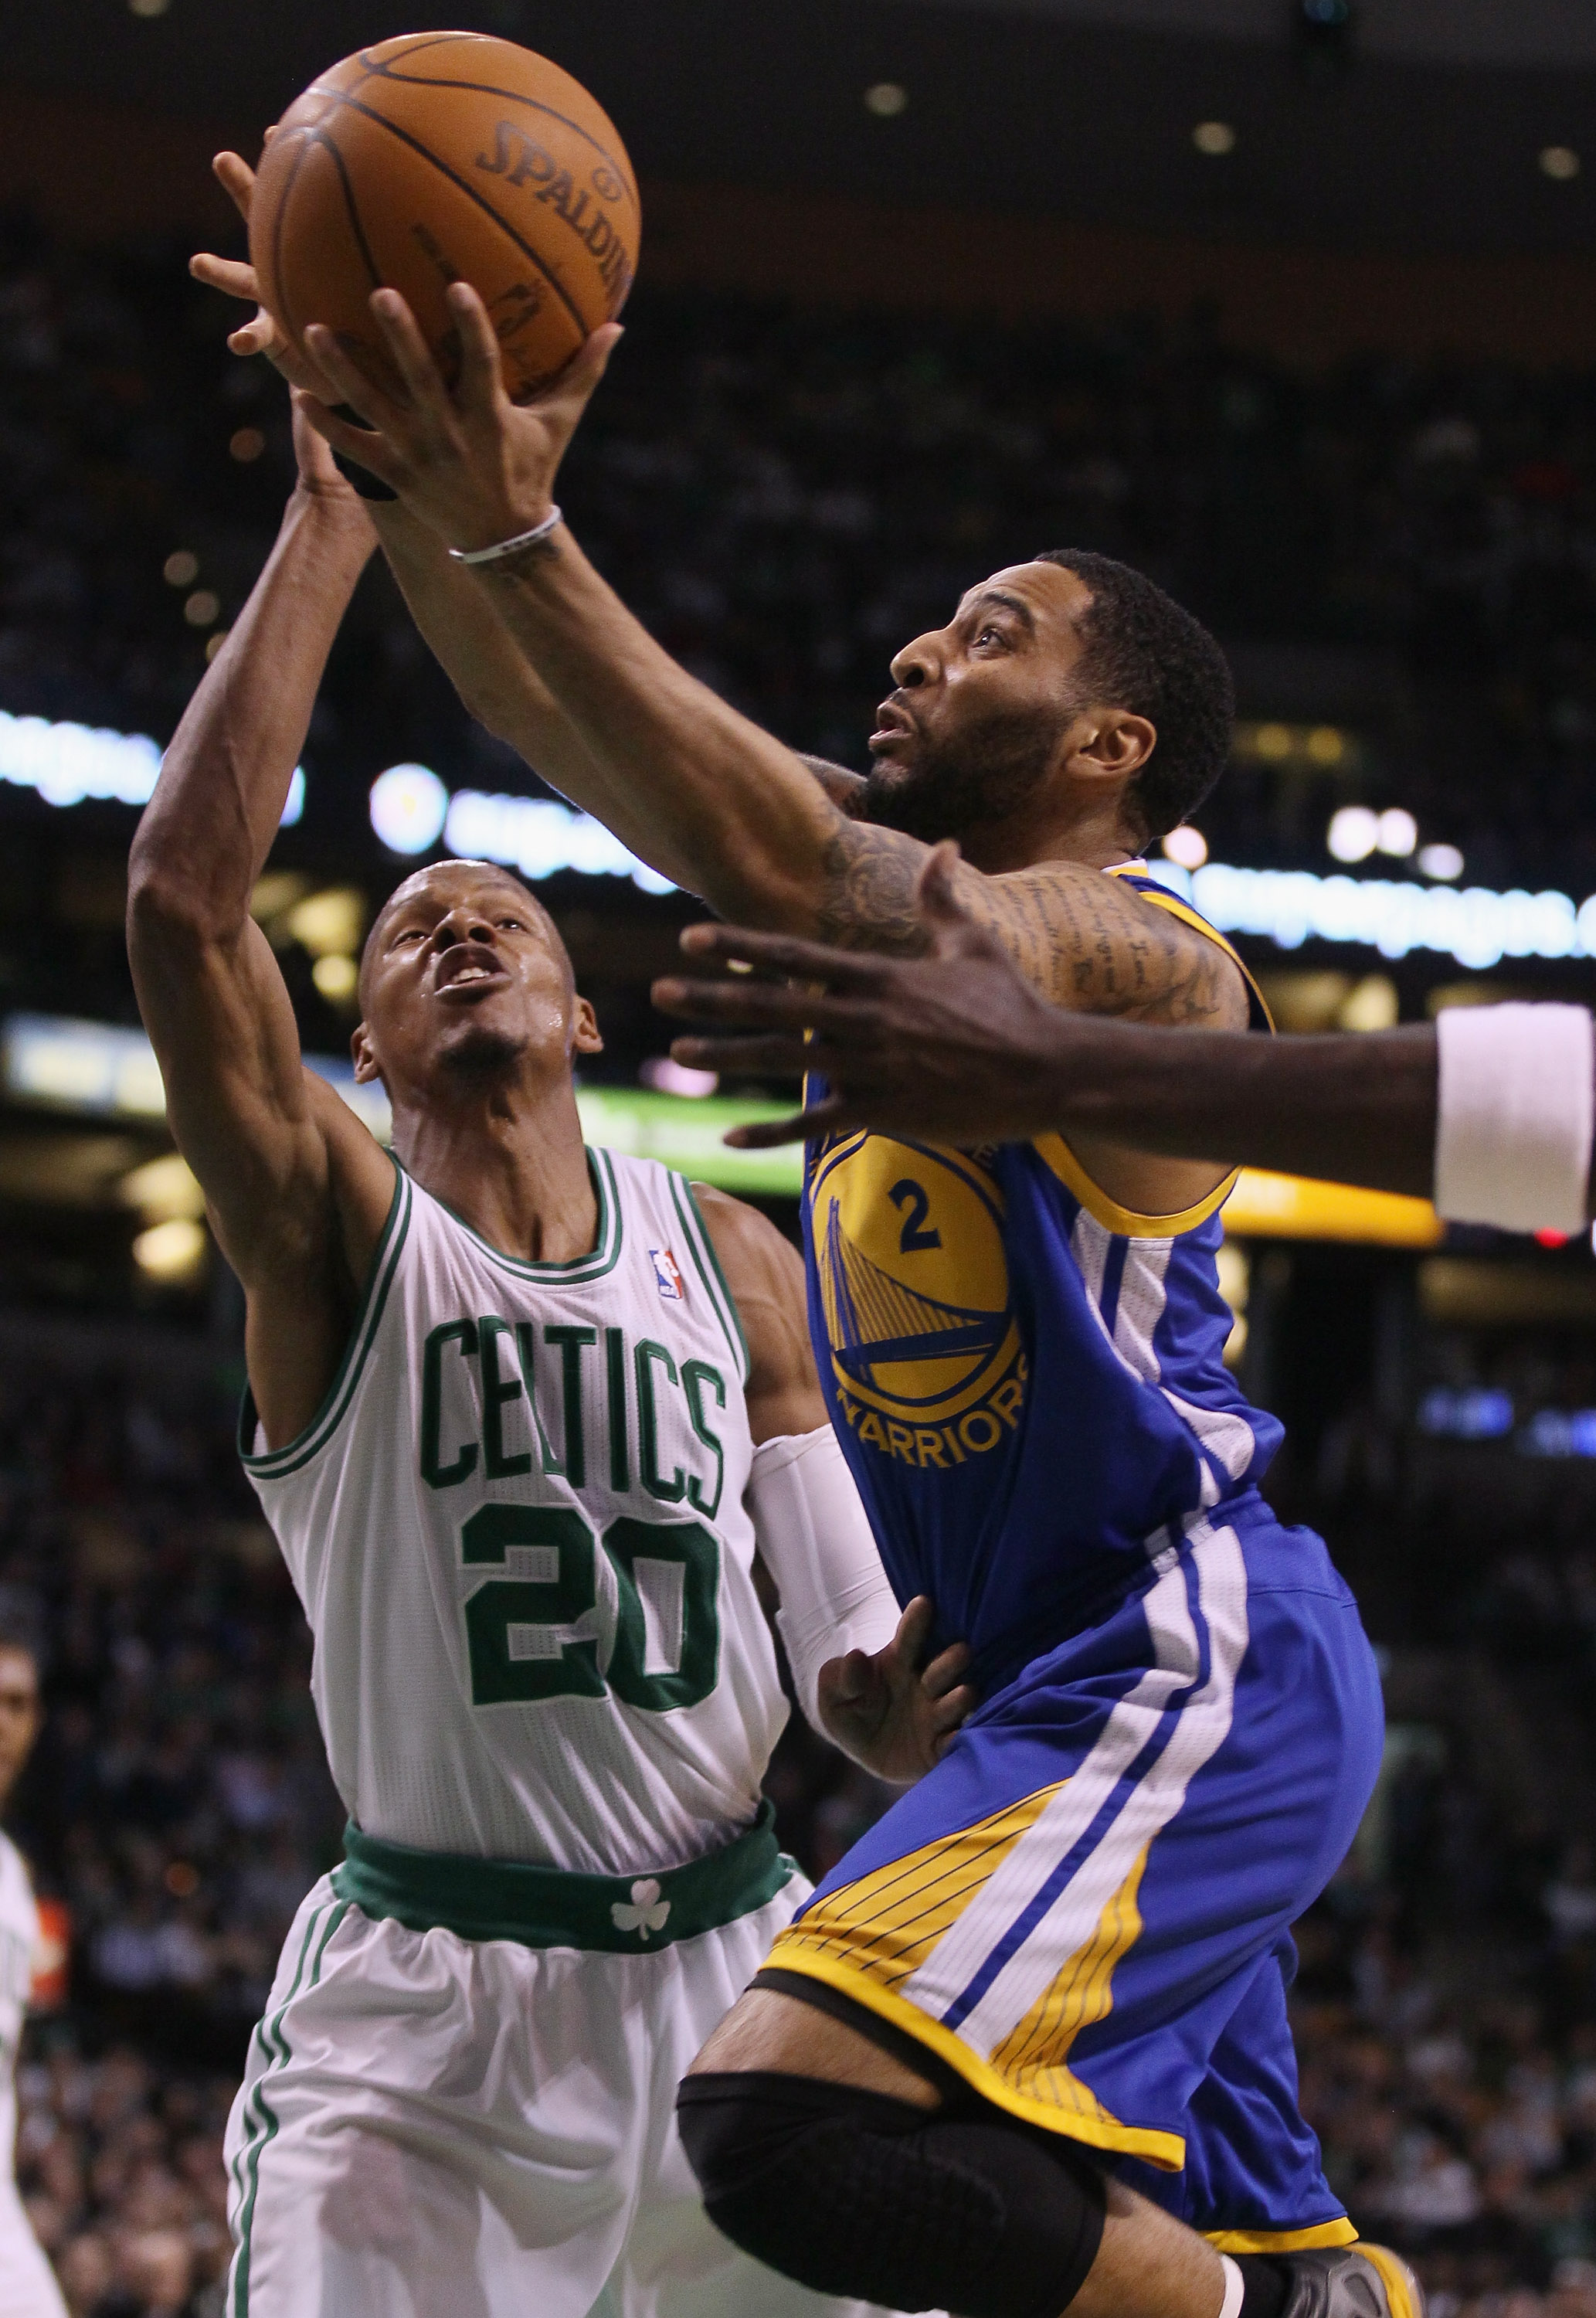 BOSTON, MA - MARCH 04:  Acie Law #2 of the Golden State Warriors takes a shot as Ray Allen #20 of the Boston Celtics defends on March 4, 2011 at the TD Garden in Boston, Massachusetts.  The Celtics defeated the Warriors 107-103. NOTE TO USER: User express